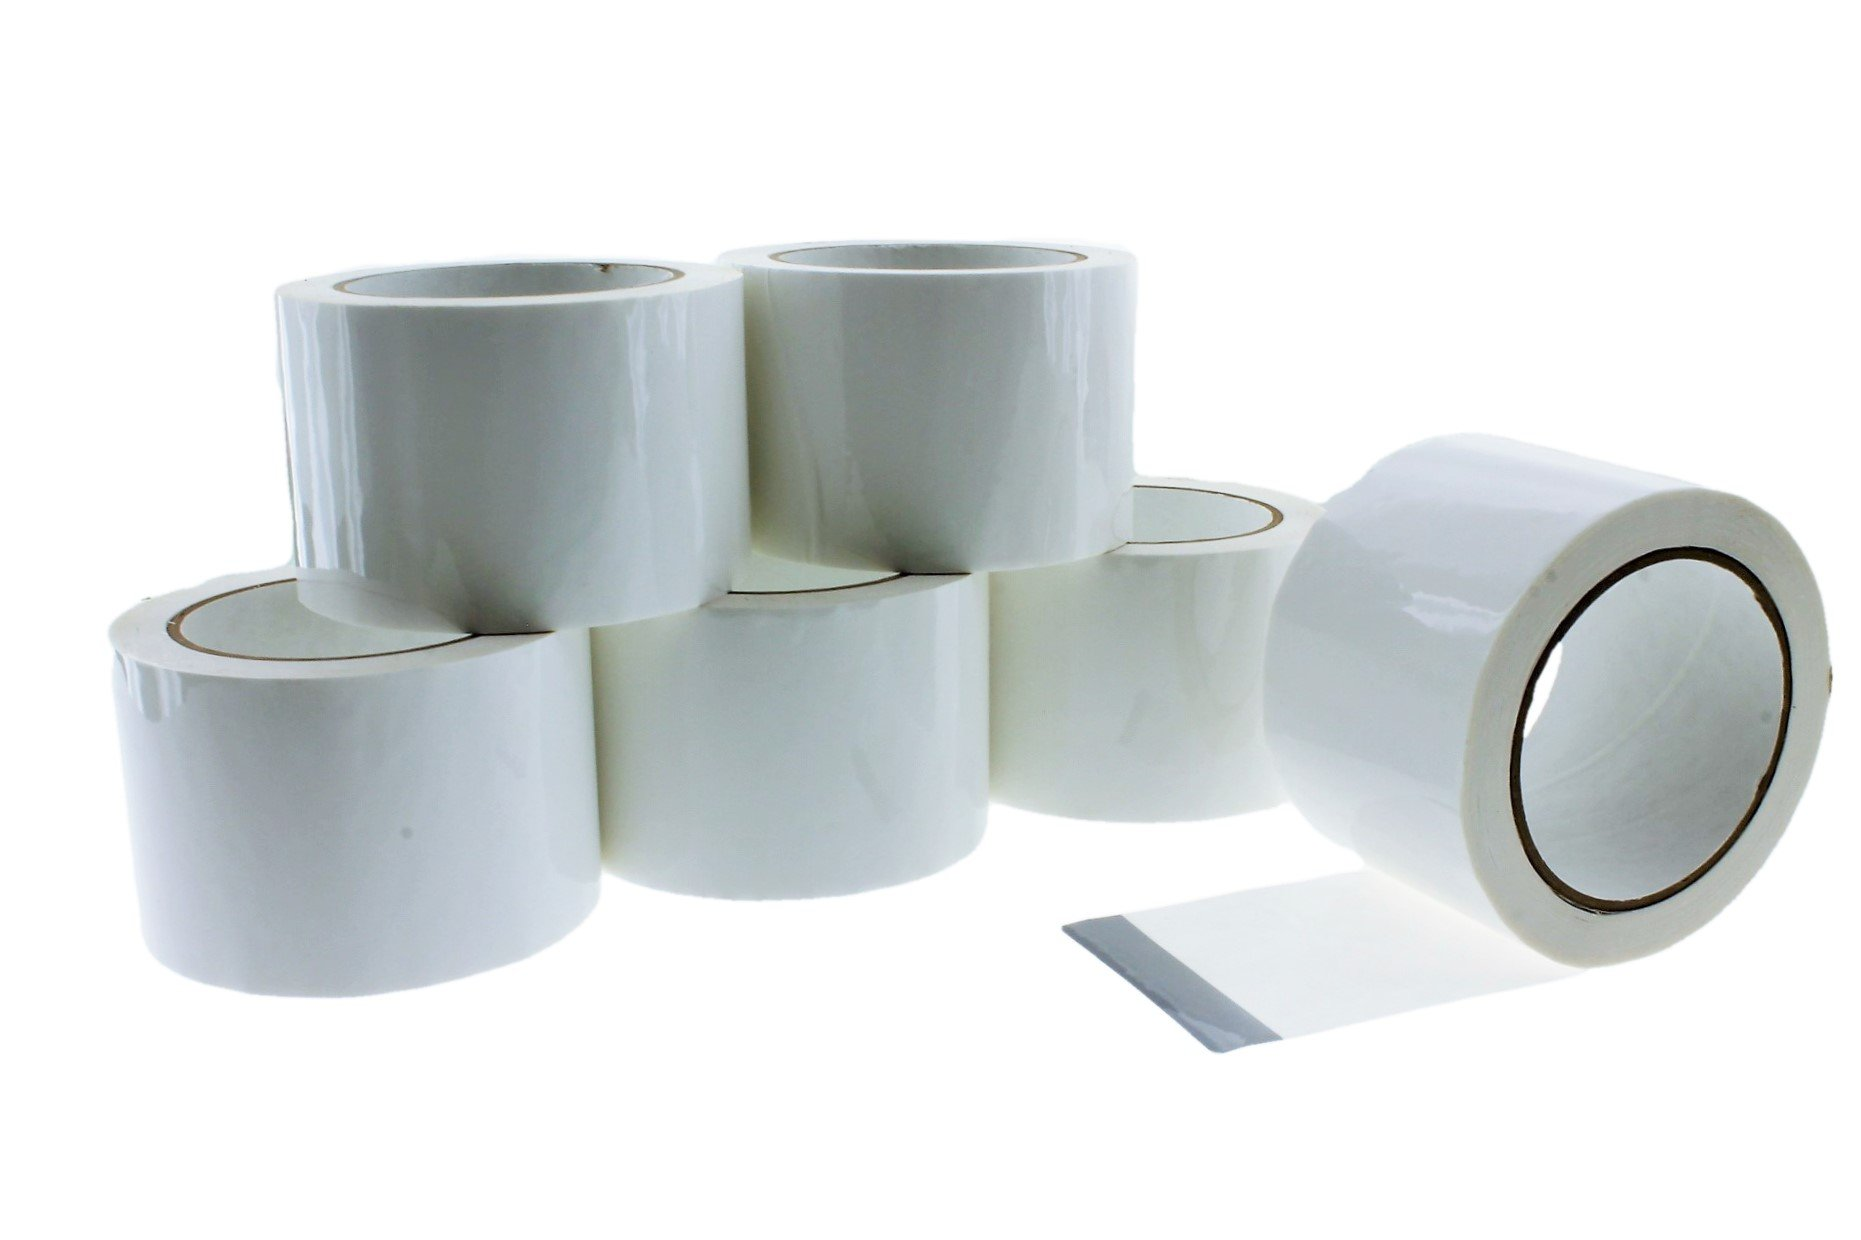 6pk 3'' in x 60 yd White House Wrap Tape Sheathing Building Wrapping Housewrap Sheath Tape Insulation Seaming Plastic Sheets Sealing TYVEK Construction Moisture Dust barrier Asbestos Abatement